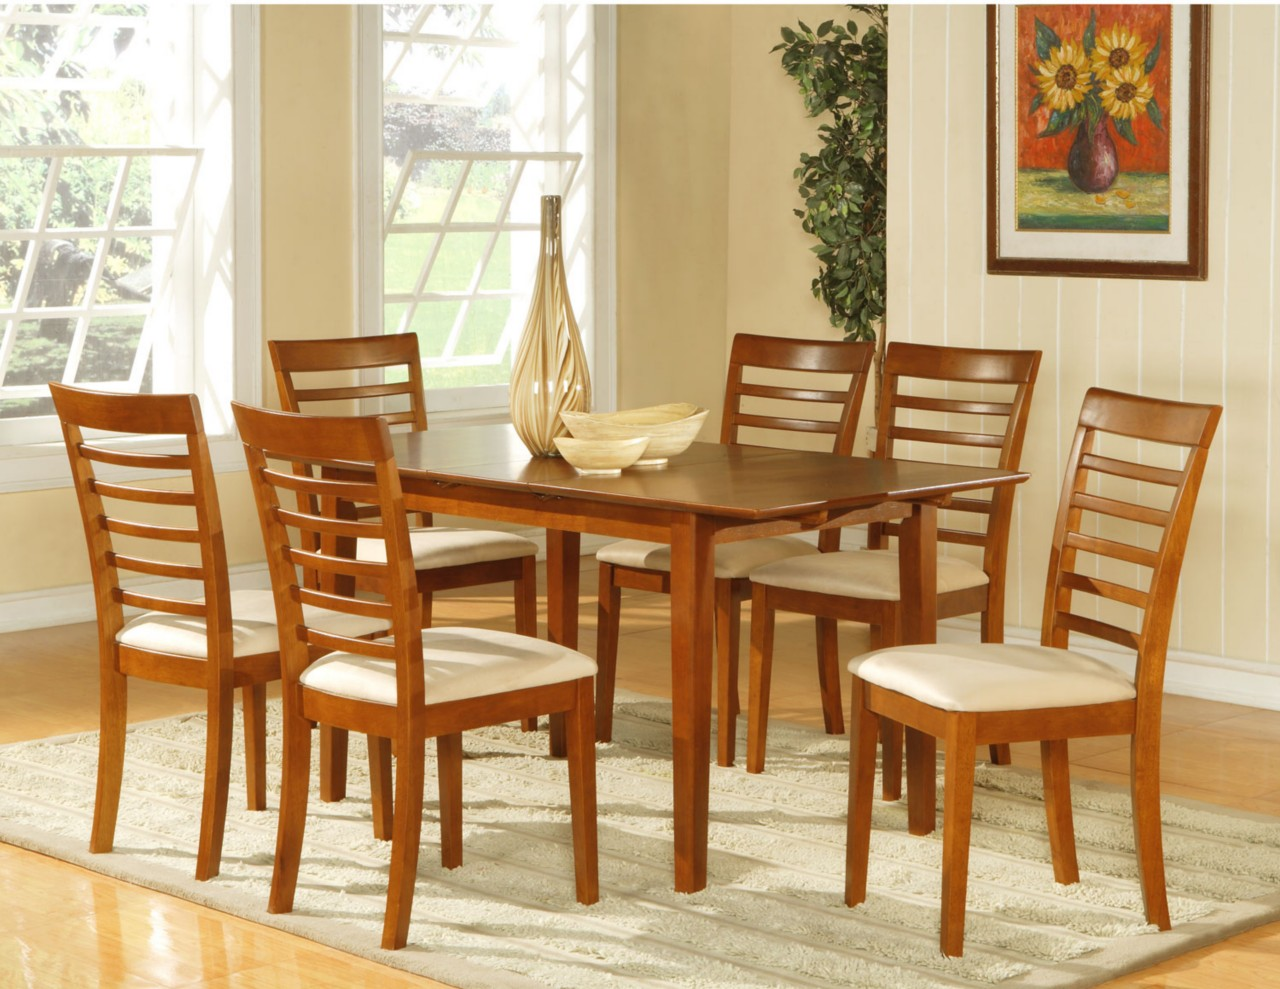 7pc dining room dinette set table and 6 chairs brown ebay for Dinette furniture